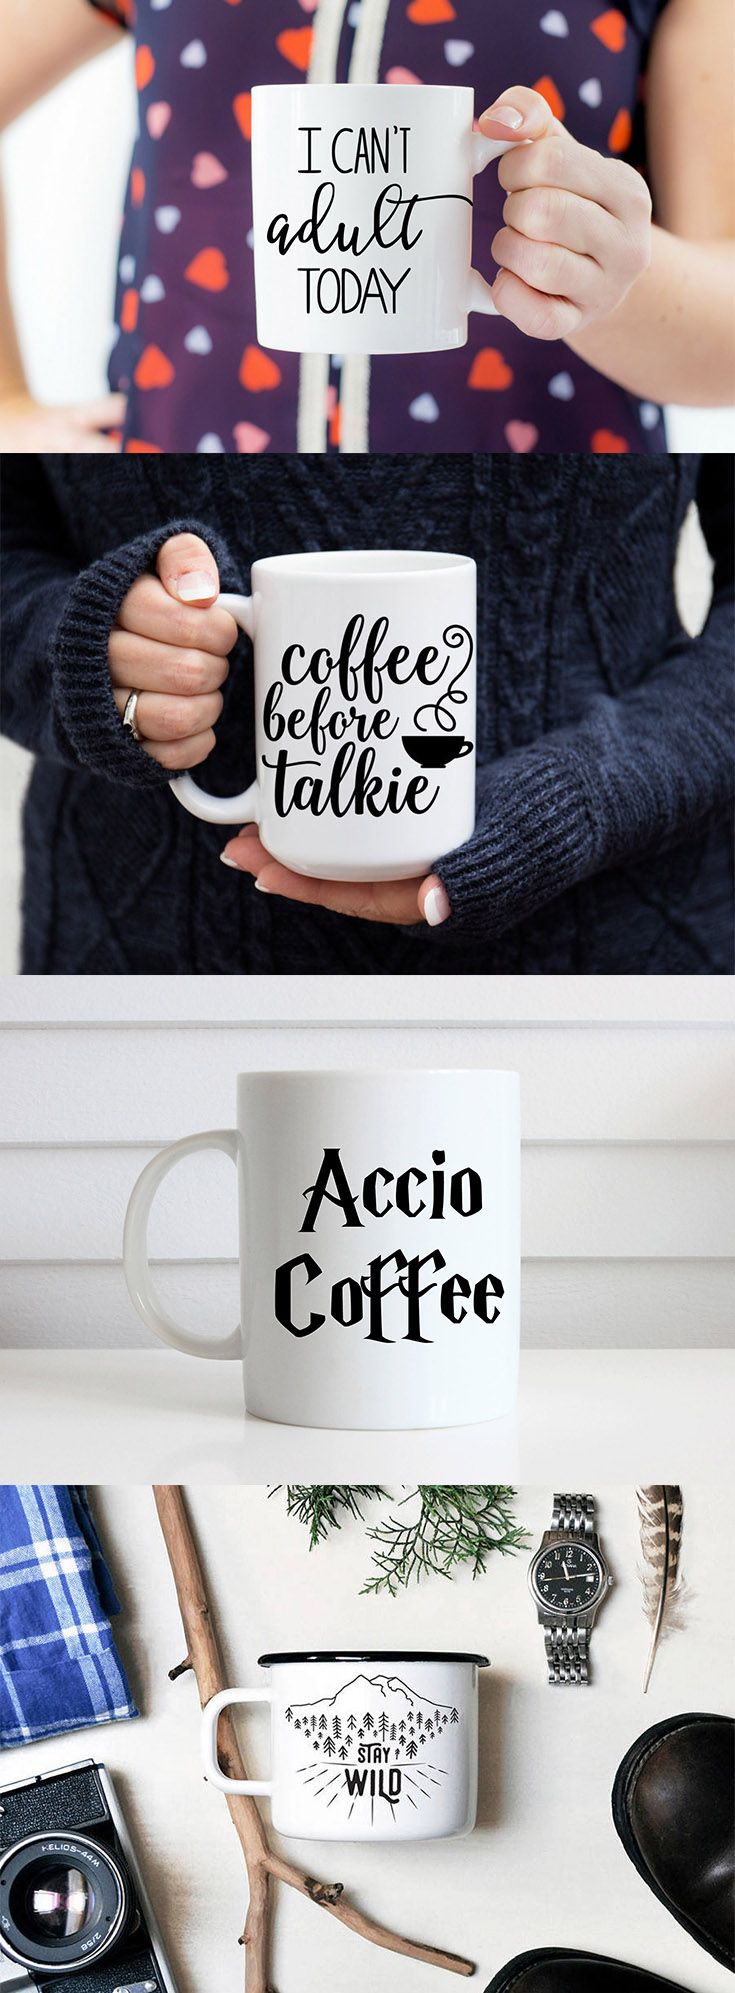 Best coffee mugs etsy - 18 Best Coffee Mugs You Can Buy On Etsy Right Now